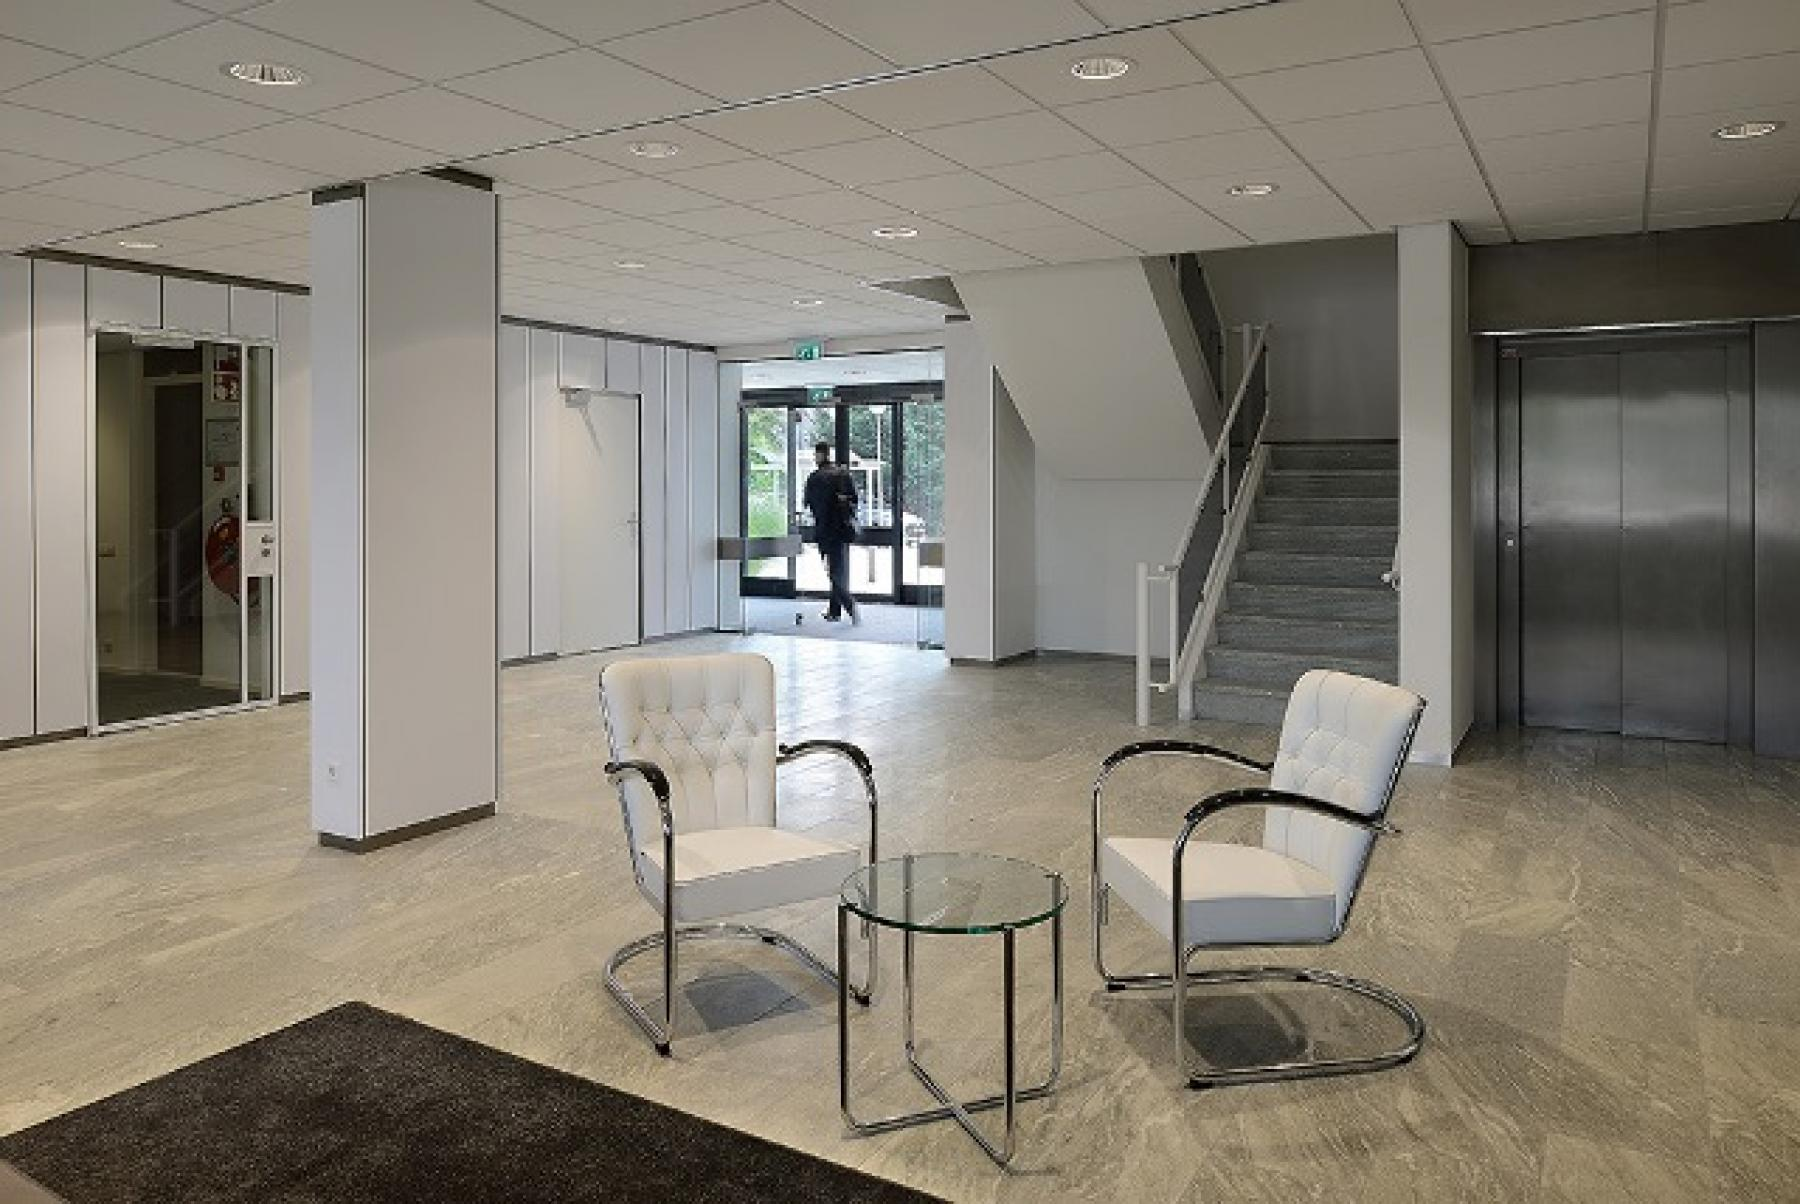 entrance building stairs white chairs table